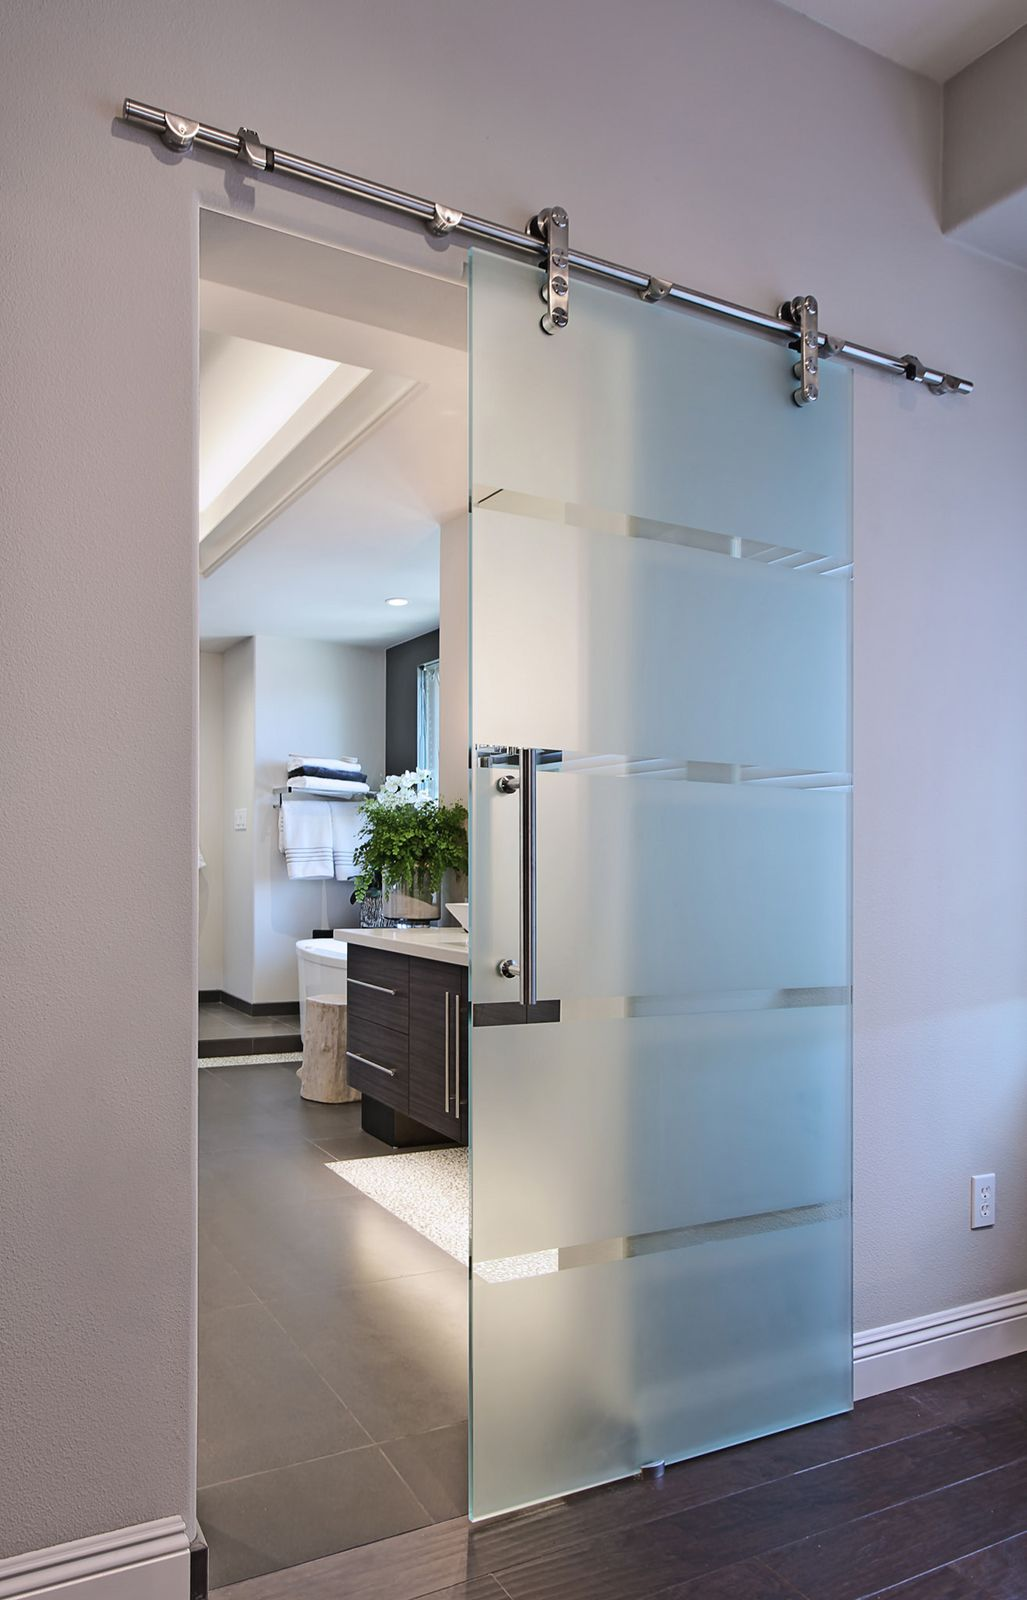 Modern apartment design bathroom interior design pinterest we quite like this idea of a sliding frosted door to the kitchen from the hallway to close or leave open as we wish planetlyrics Gallery